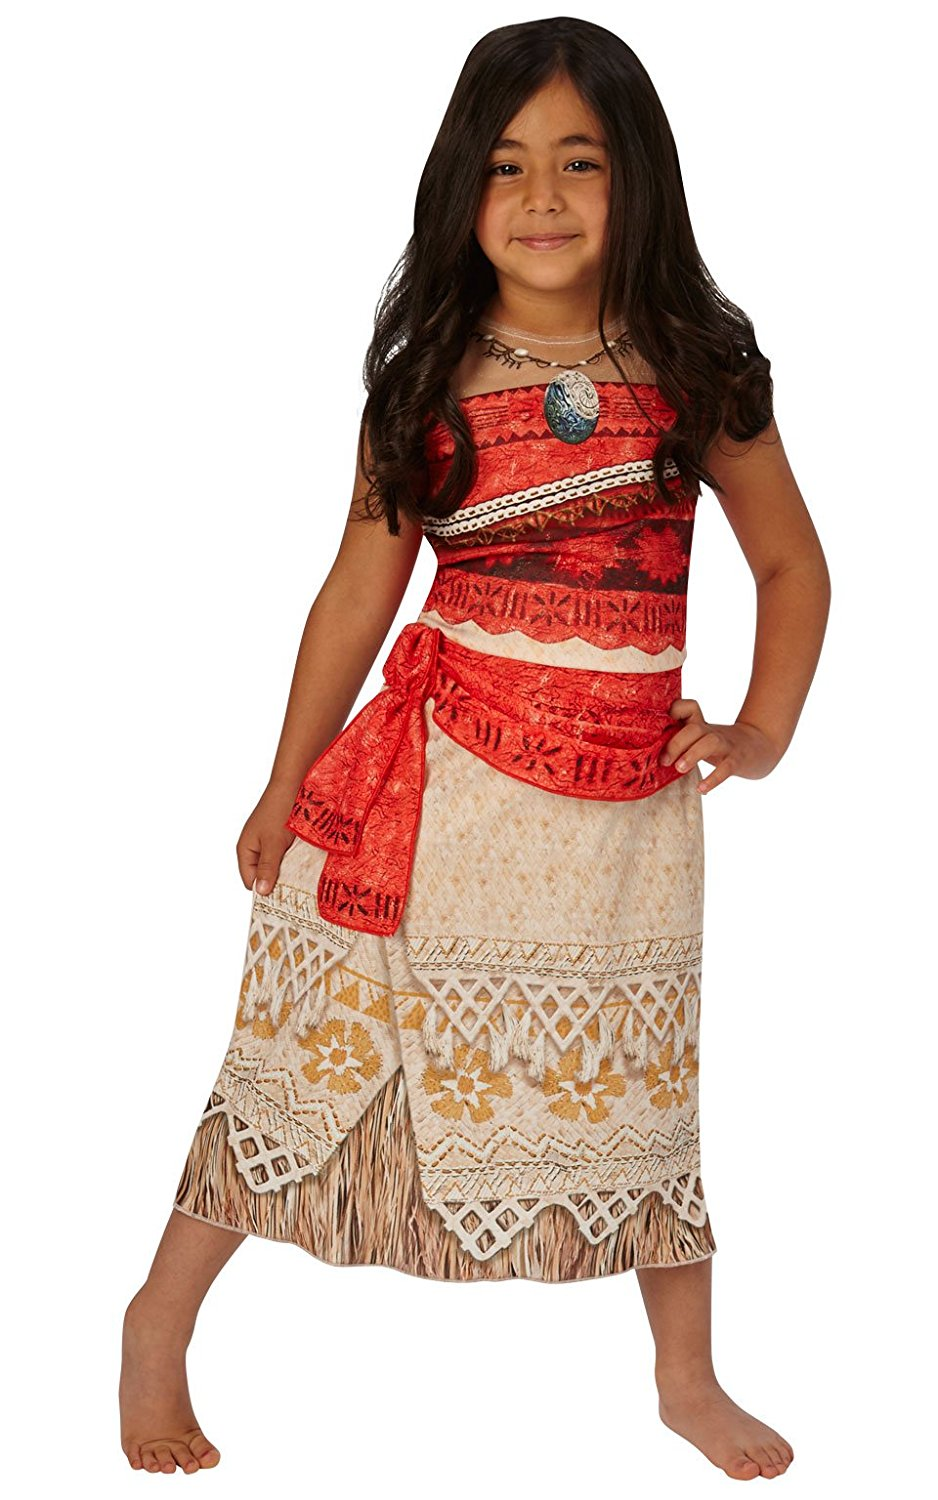 Disney's Moana child costume 630036